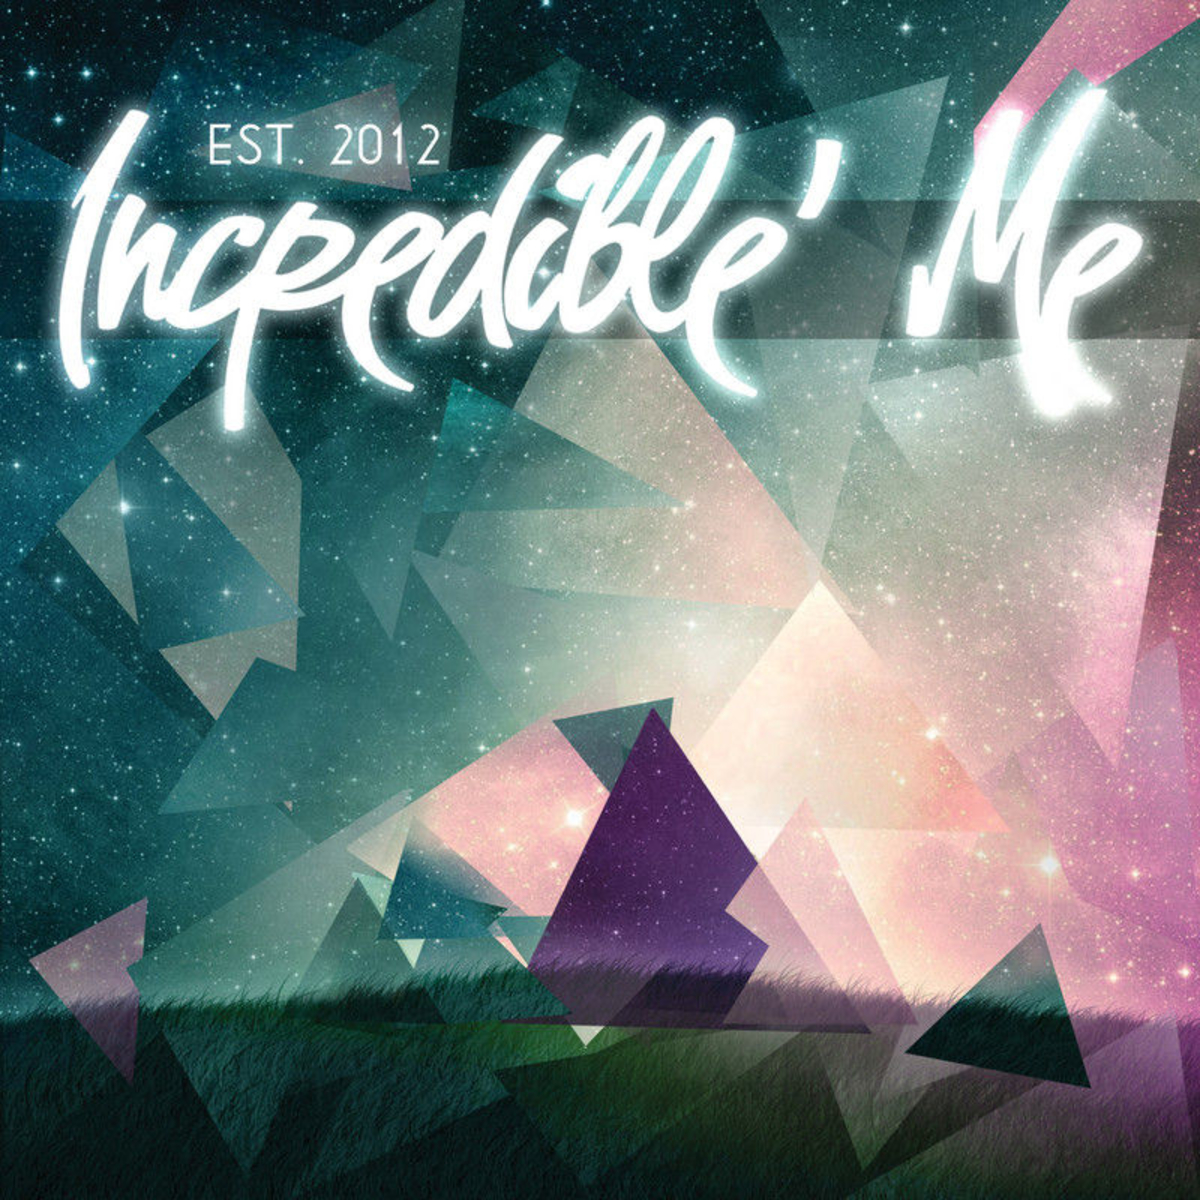 Incredible' Me - Est. 2012 (2013)